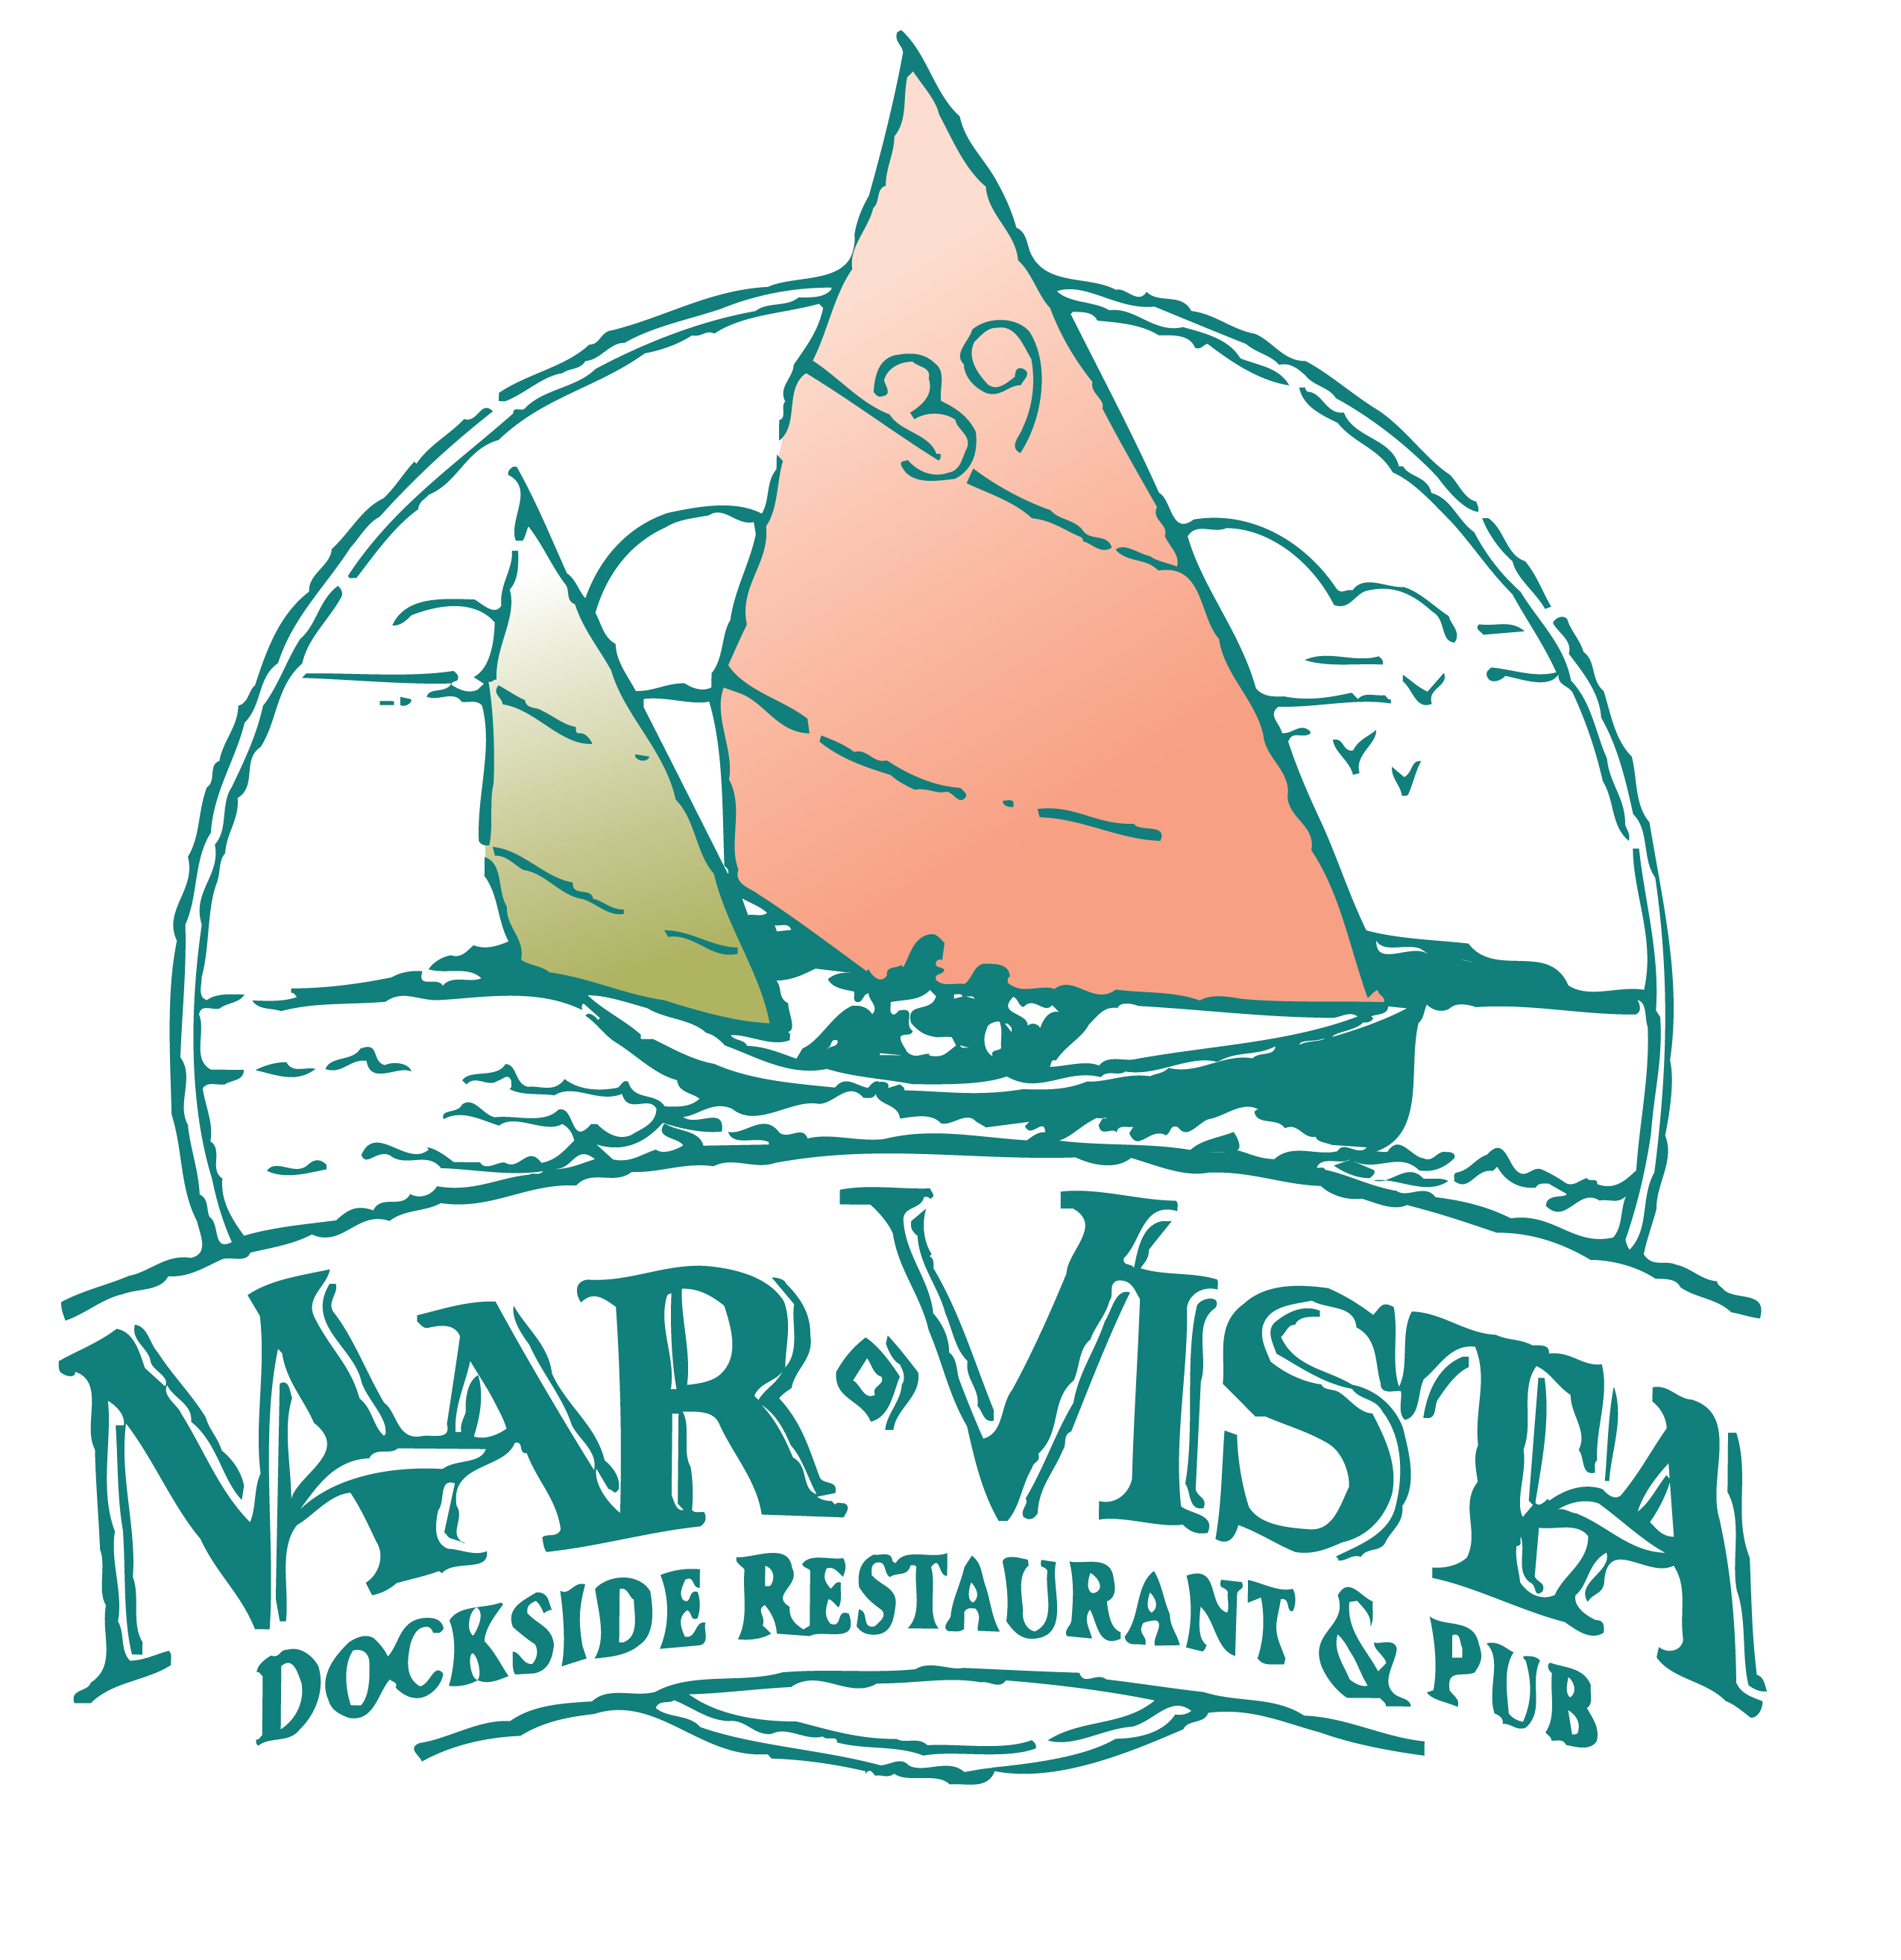 Mar Vista Dockside Restaurant